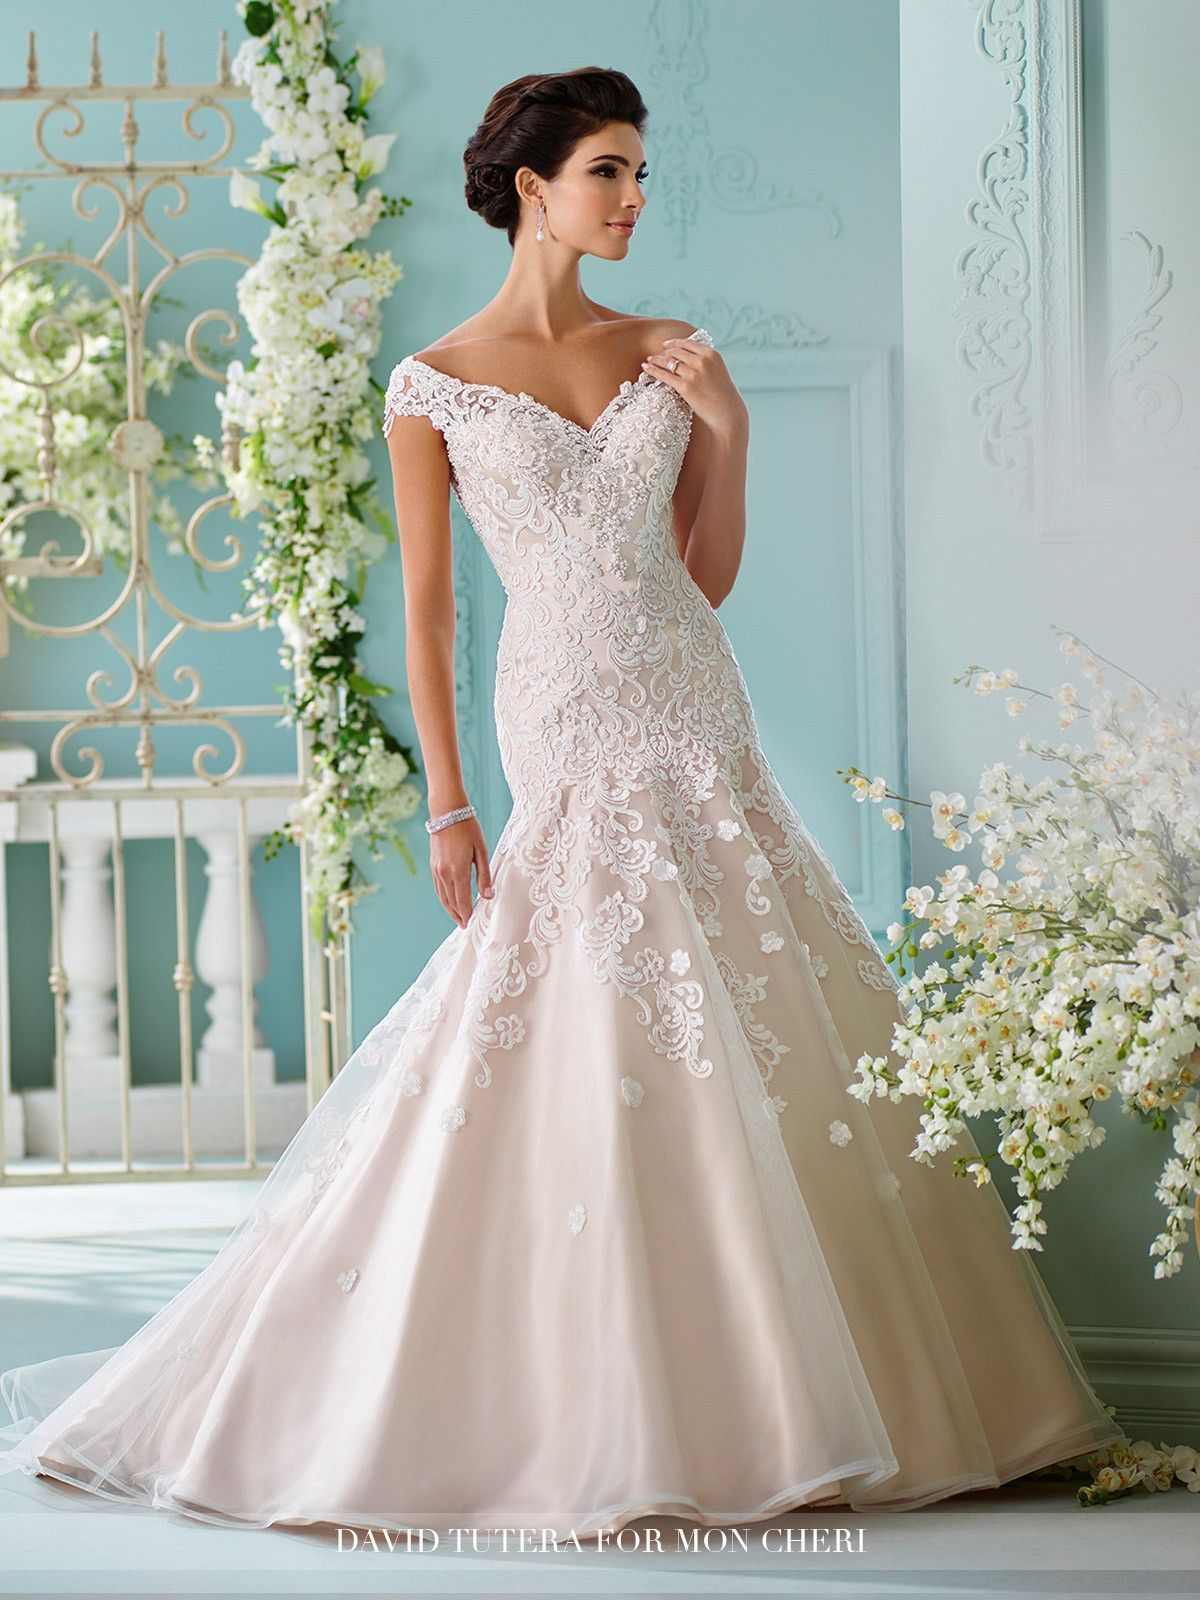 Tutera - Sialia - 216254 - All Dressed Up, Bridal Gown